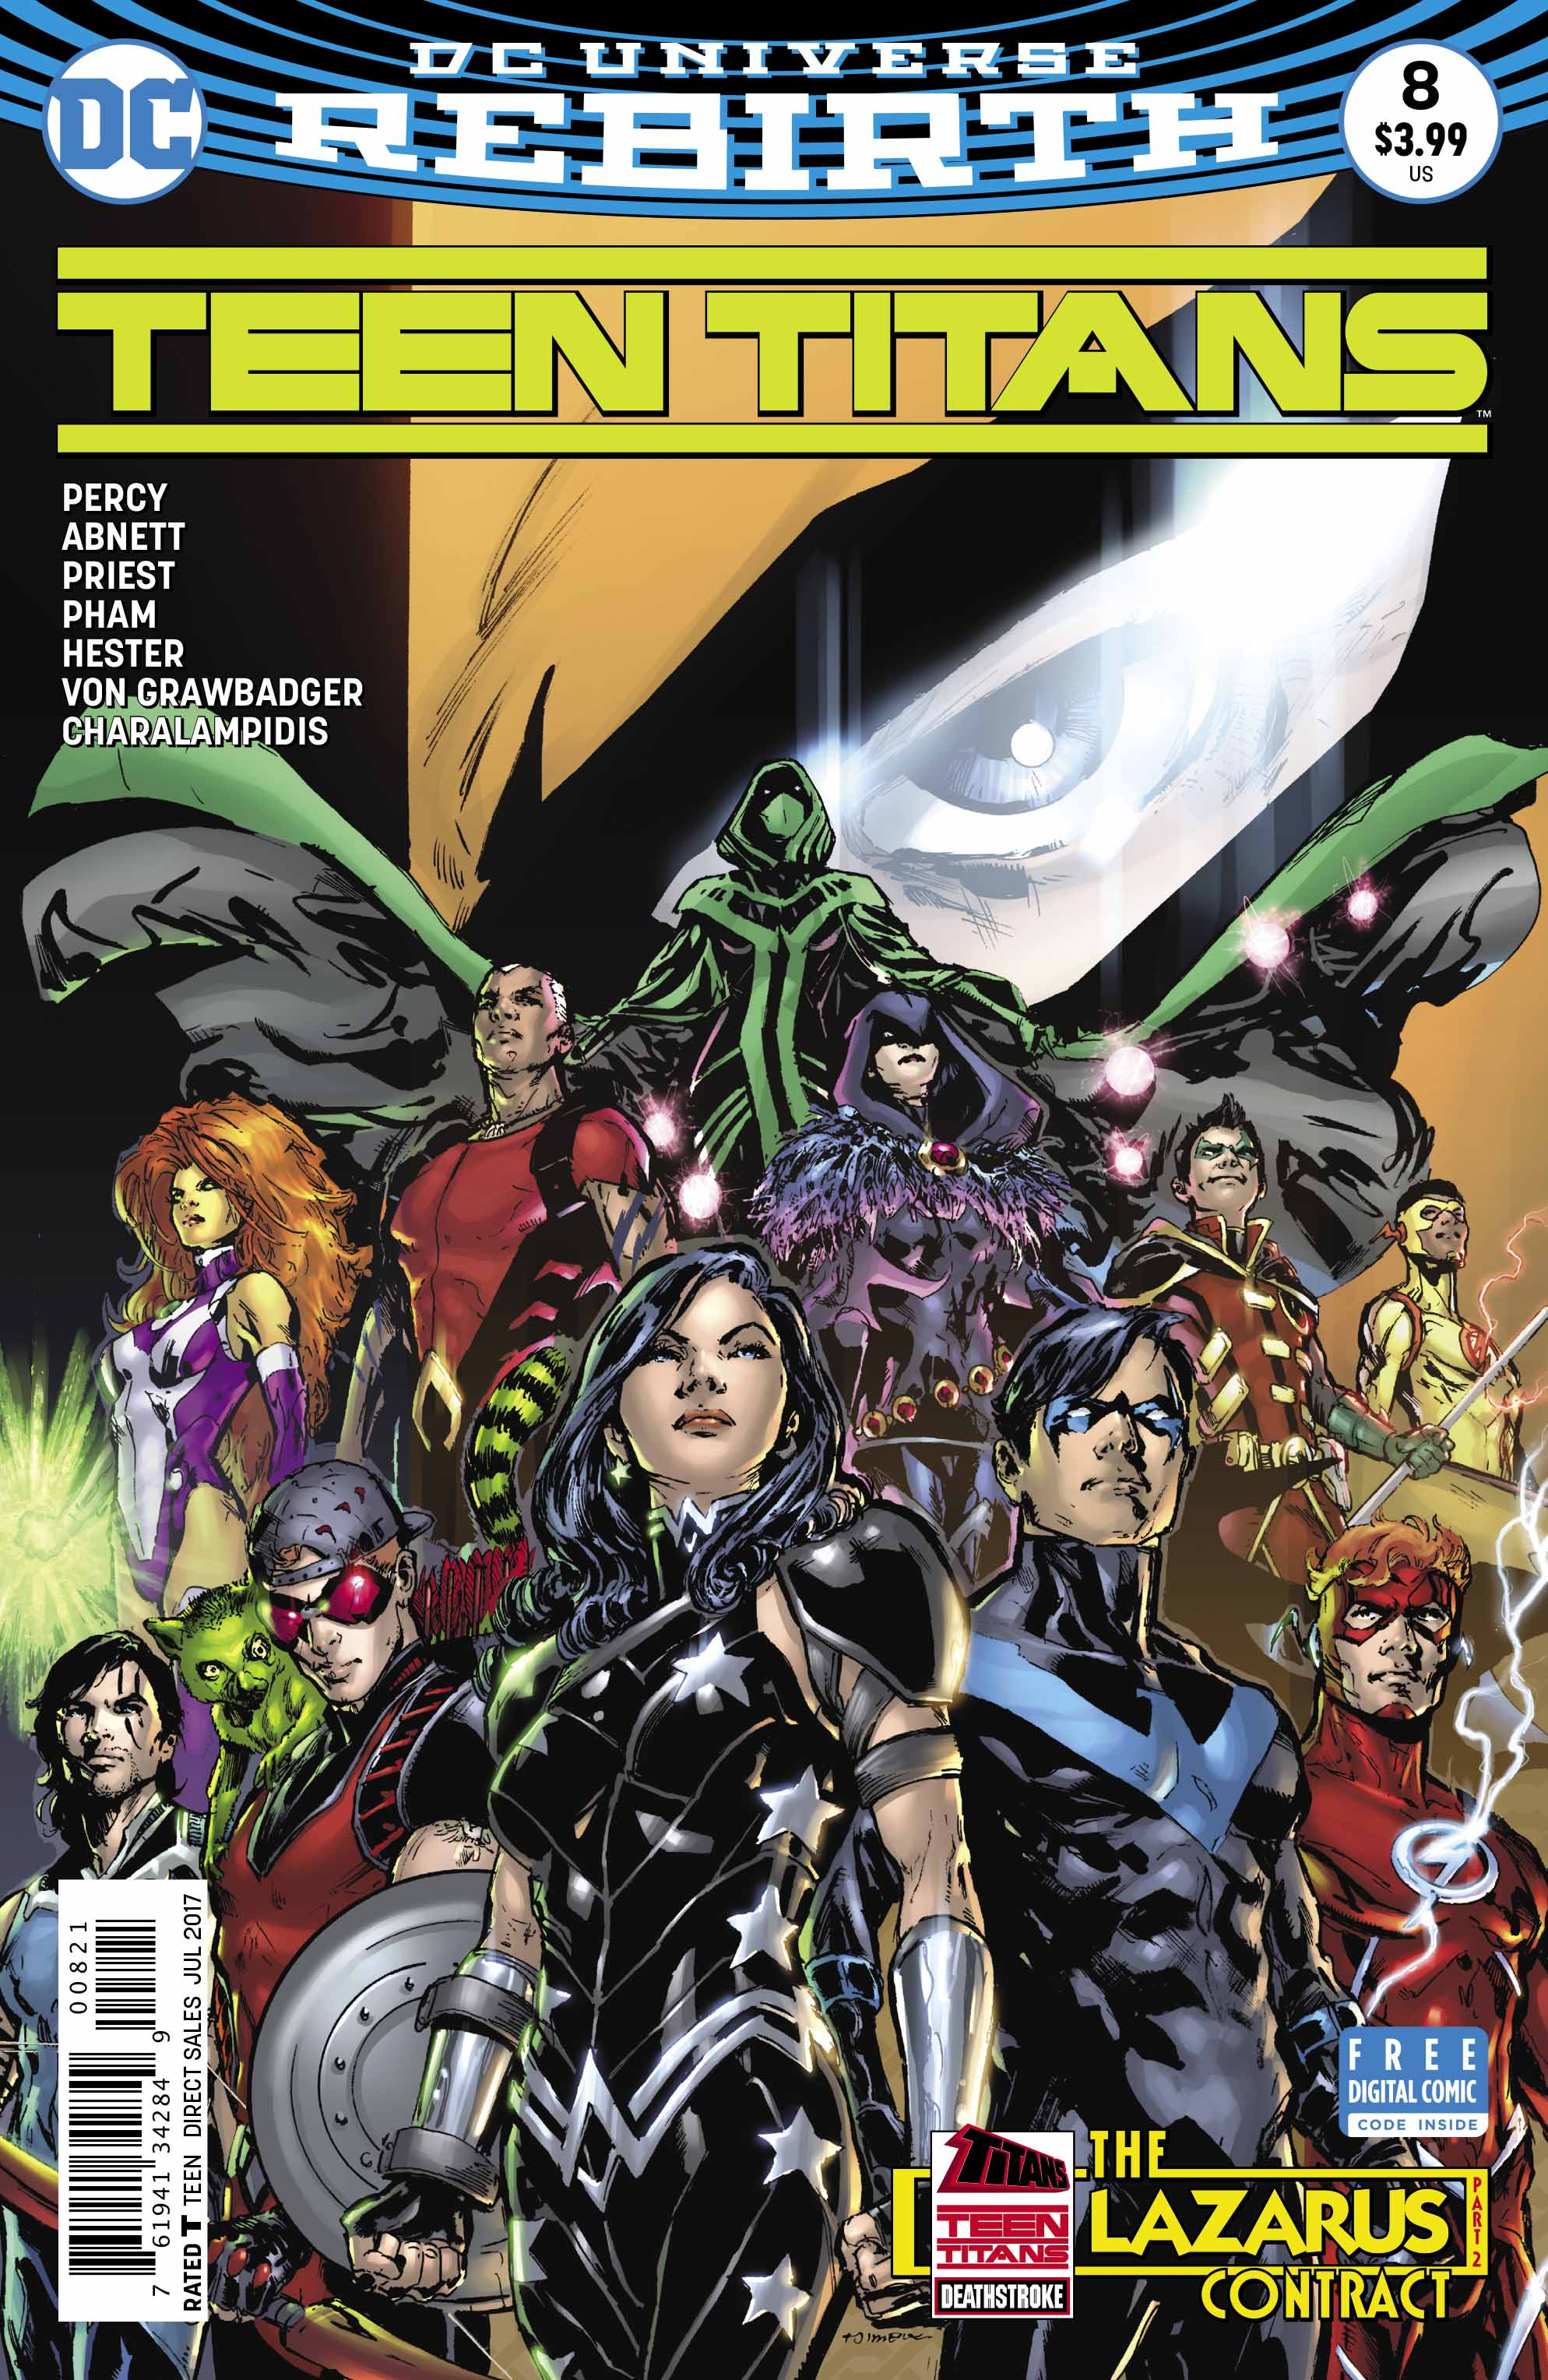 Teen Titans #8 Review